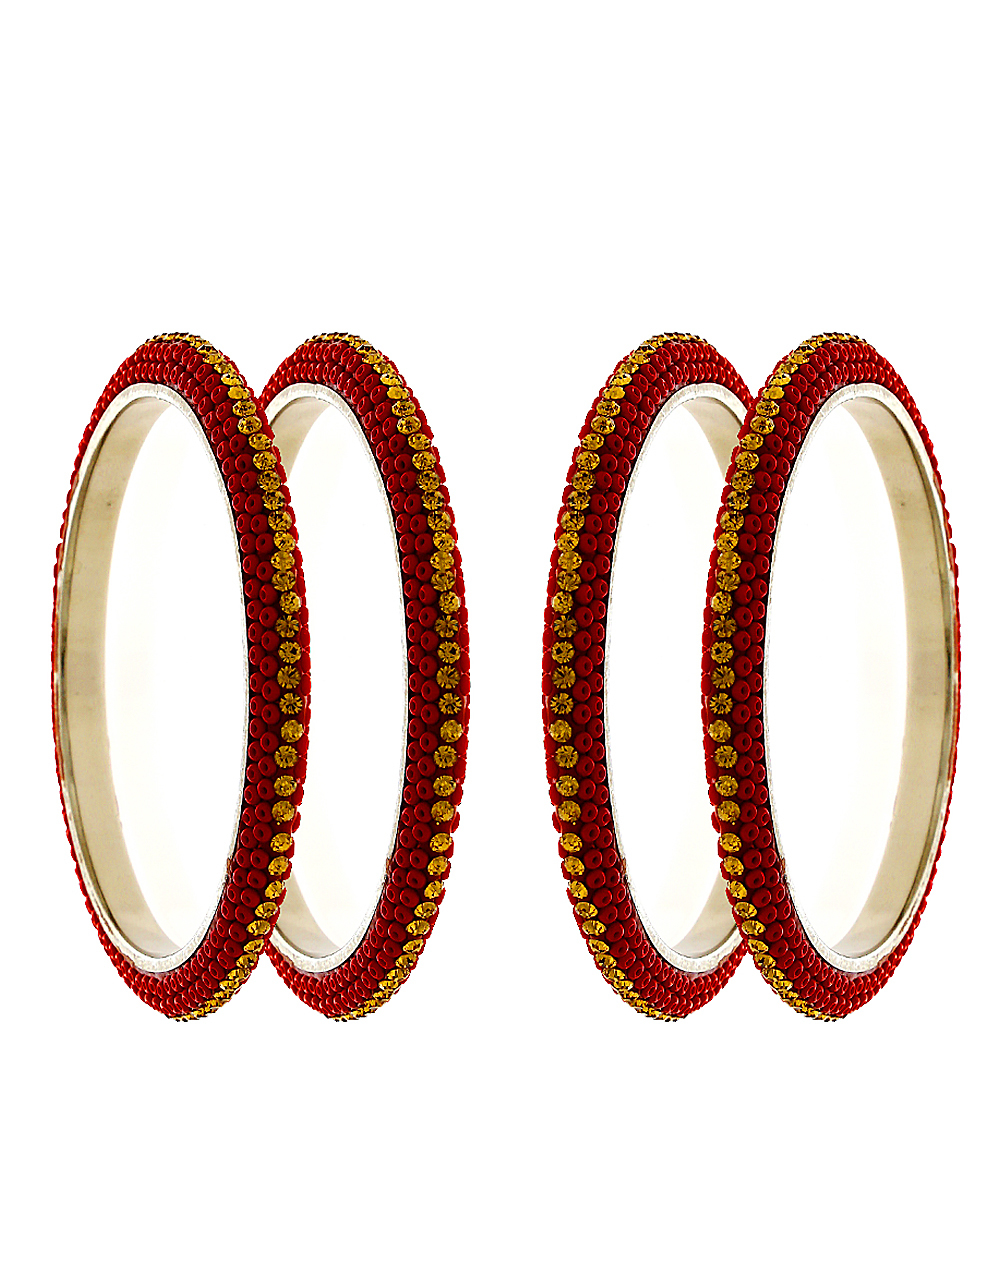 Red Colour Stylish Bangles For Girls Trendy